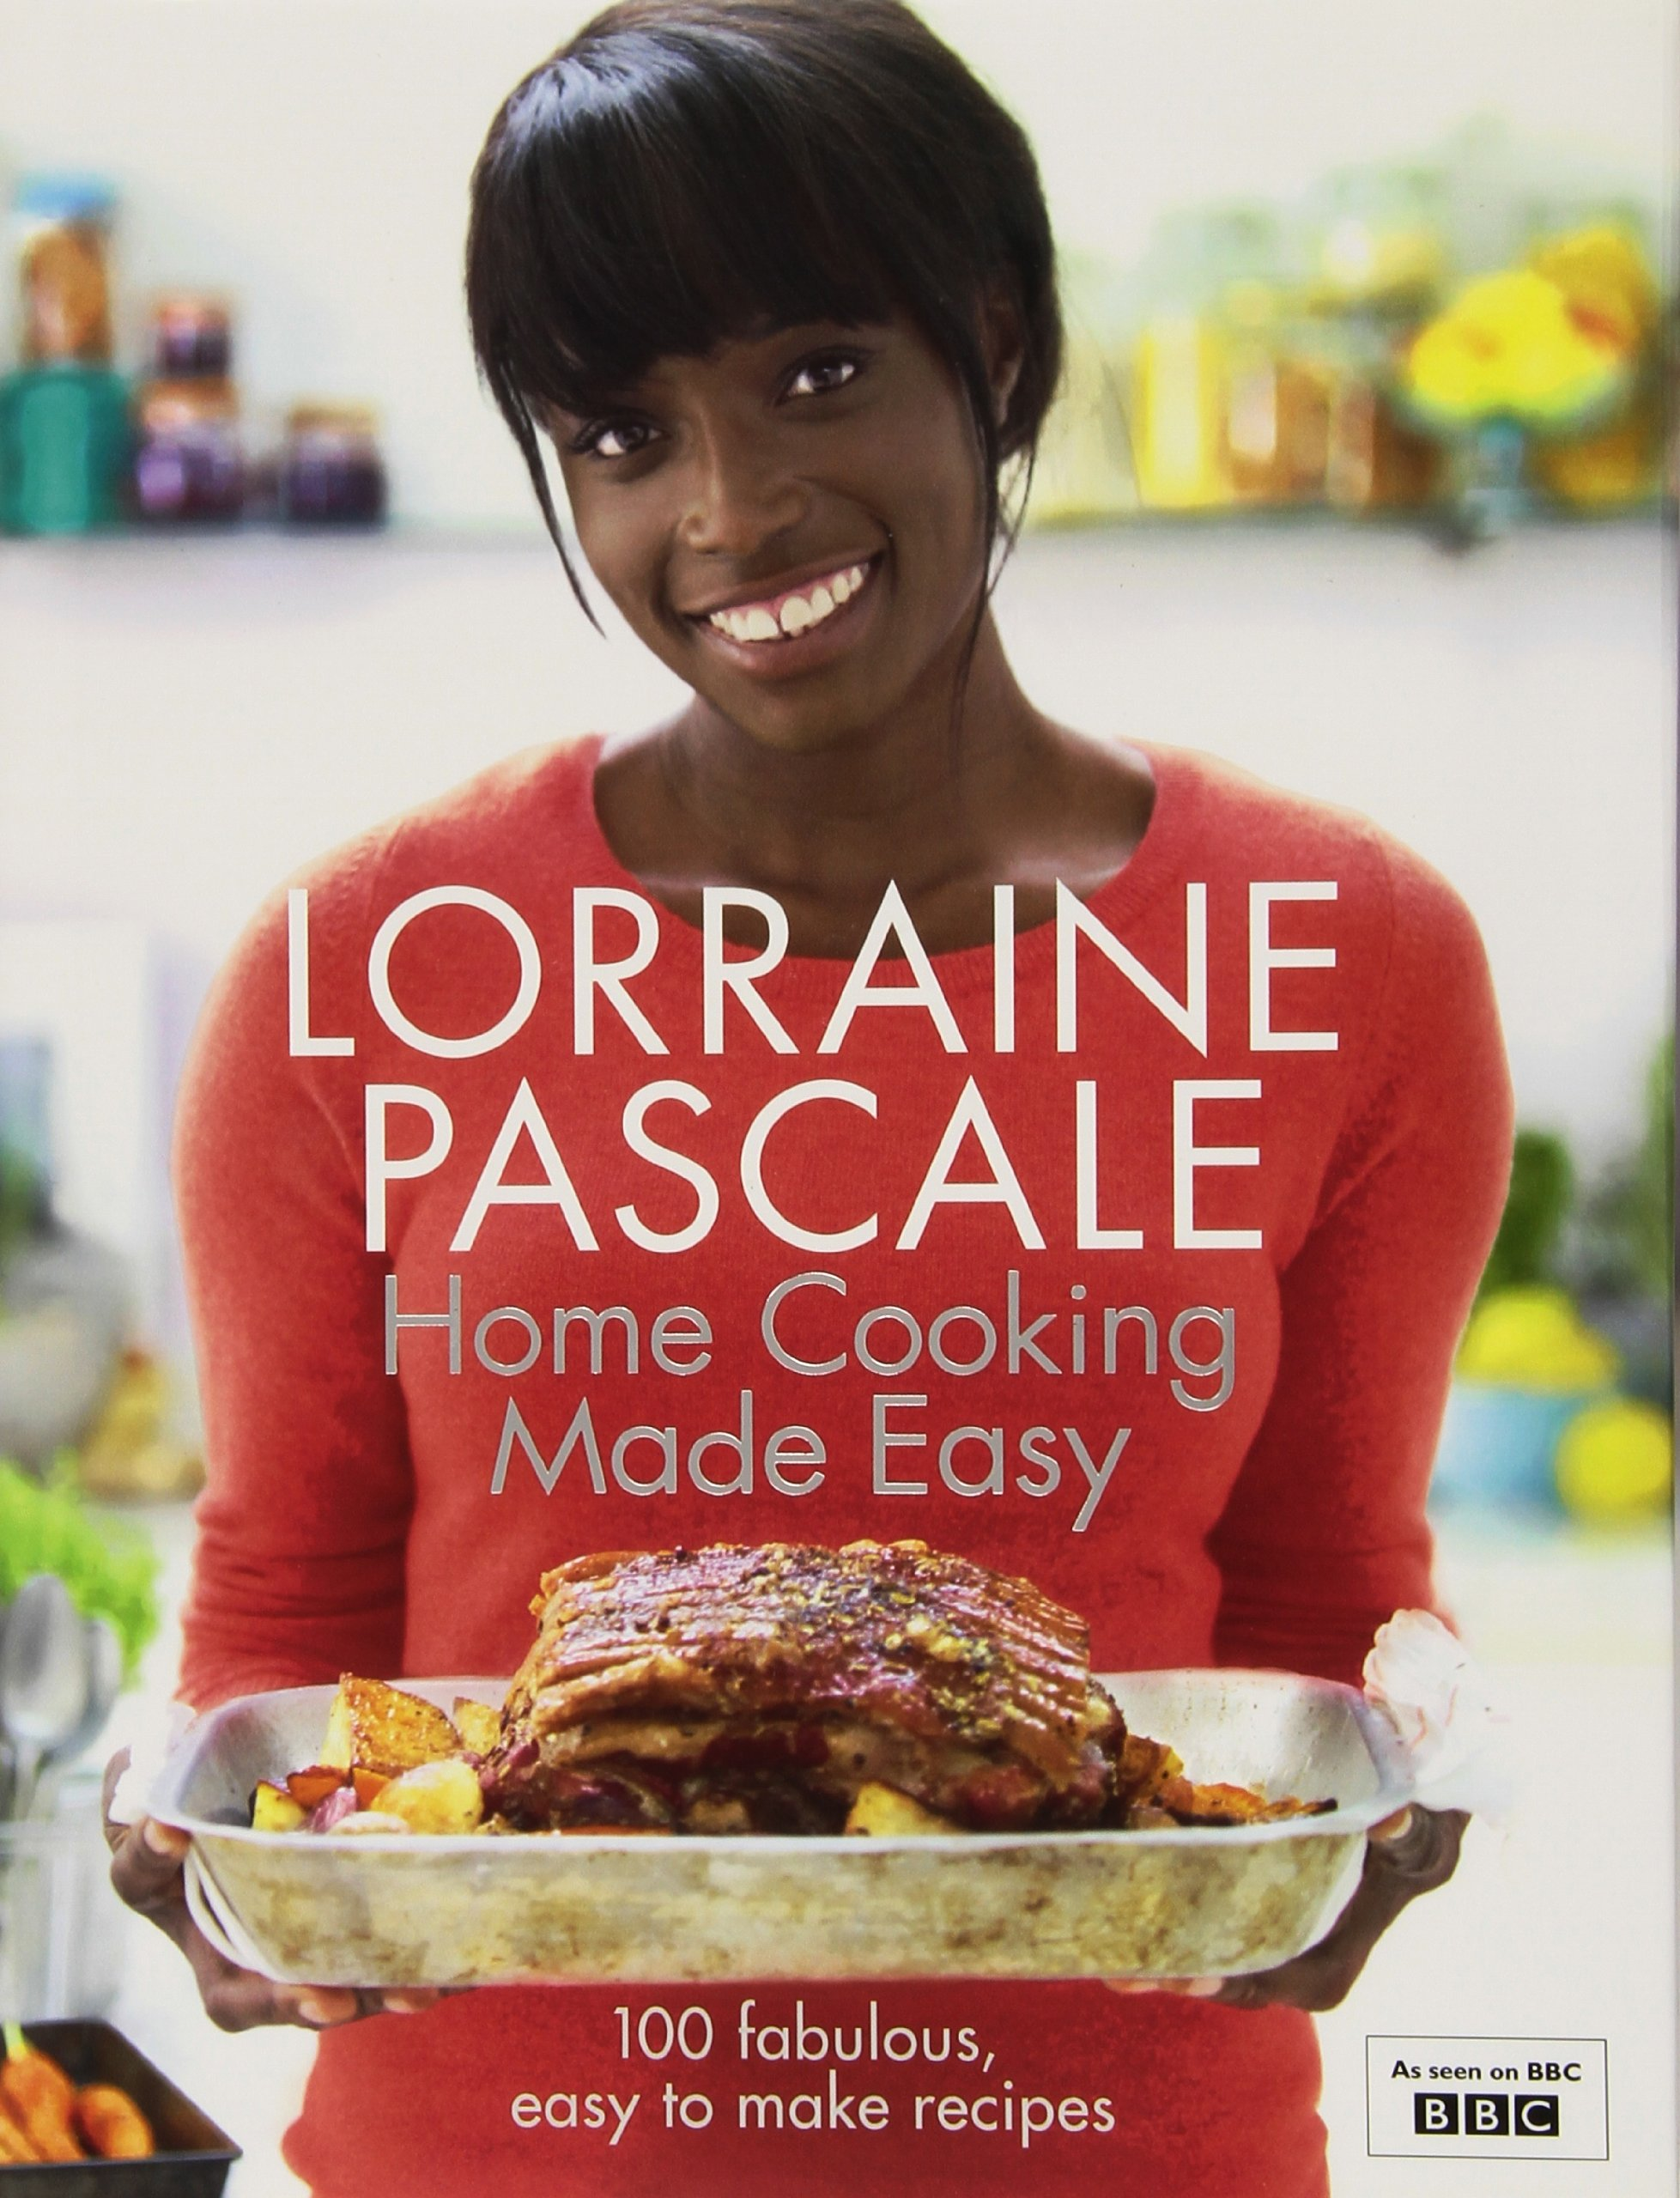 Home cooking made easy amazon lorraine pascale home cooking made easy amazon lorraine pascale 8601300020211 books forumfinder Choice Image